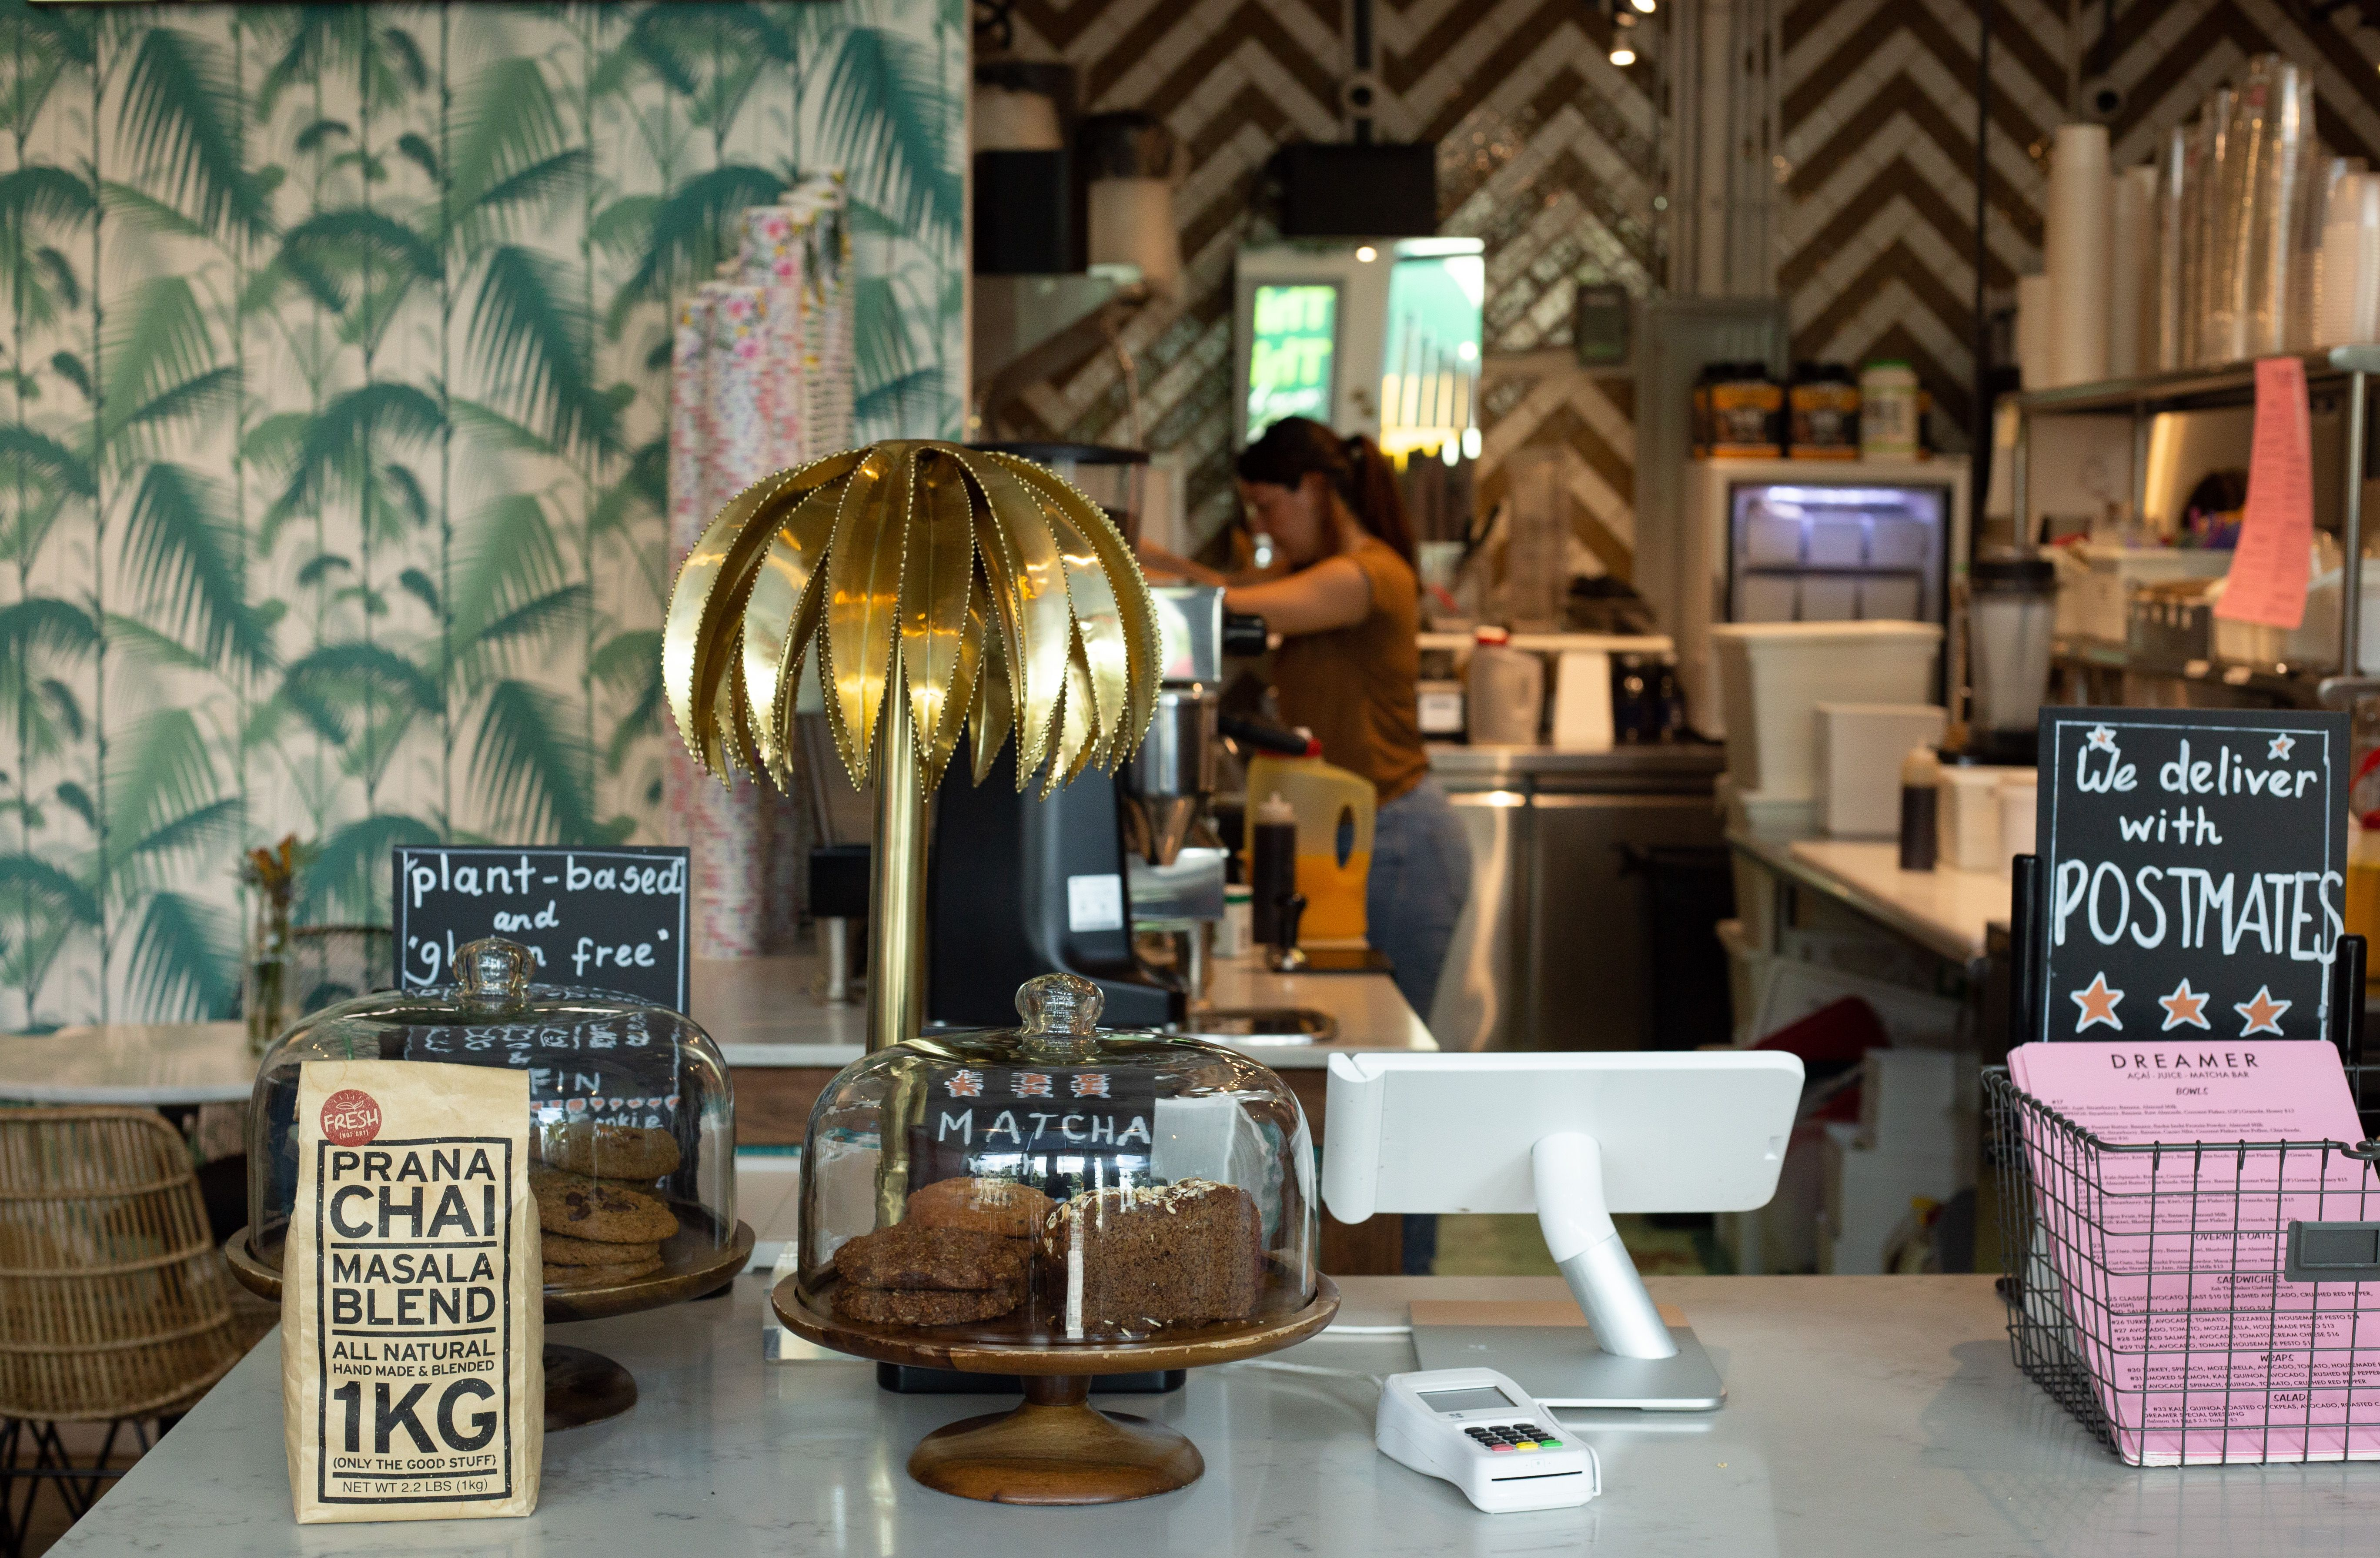 Dreamer Matcha And Acai In Miami Beach Be Sure To Check Out That Flamingo Wallpaper Too Wooden Garage The Dreamers Wood Garage Doors